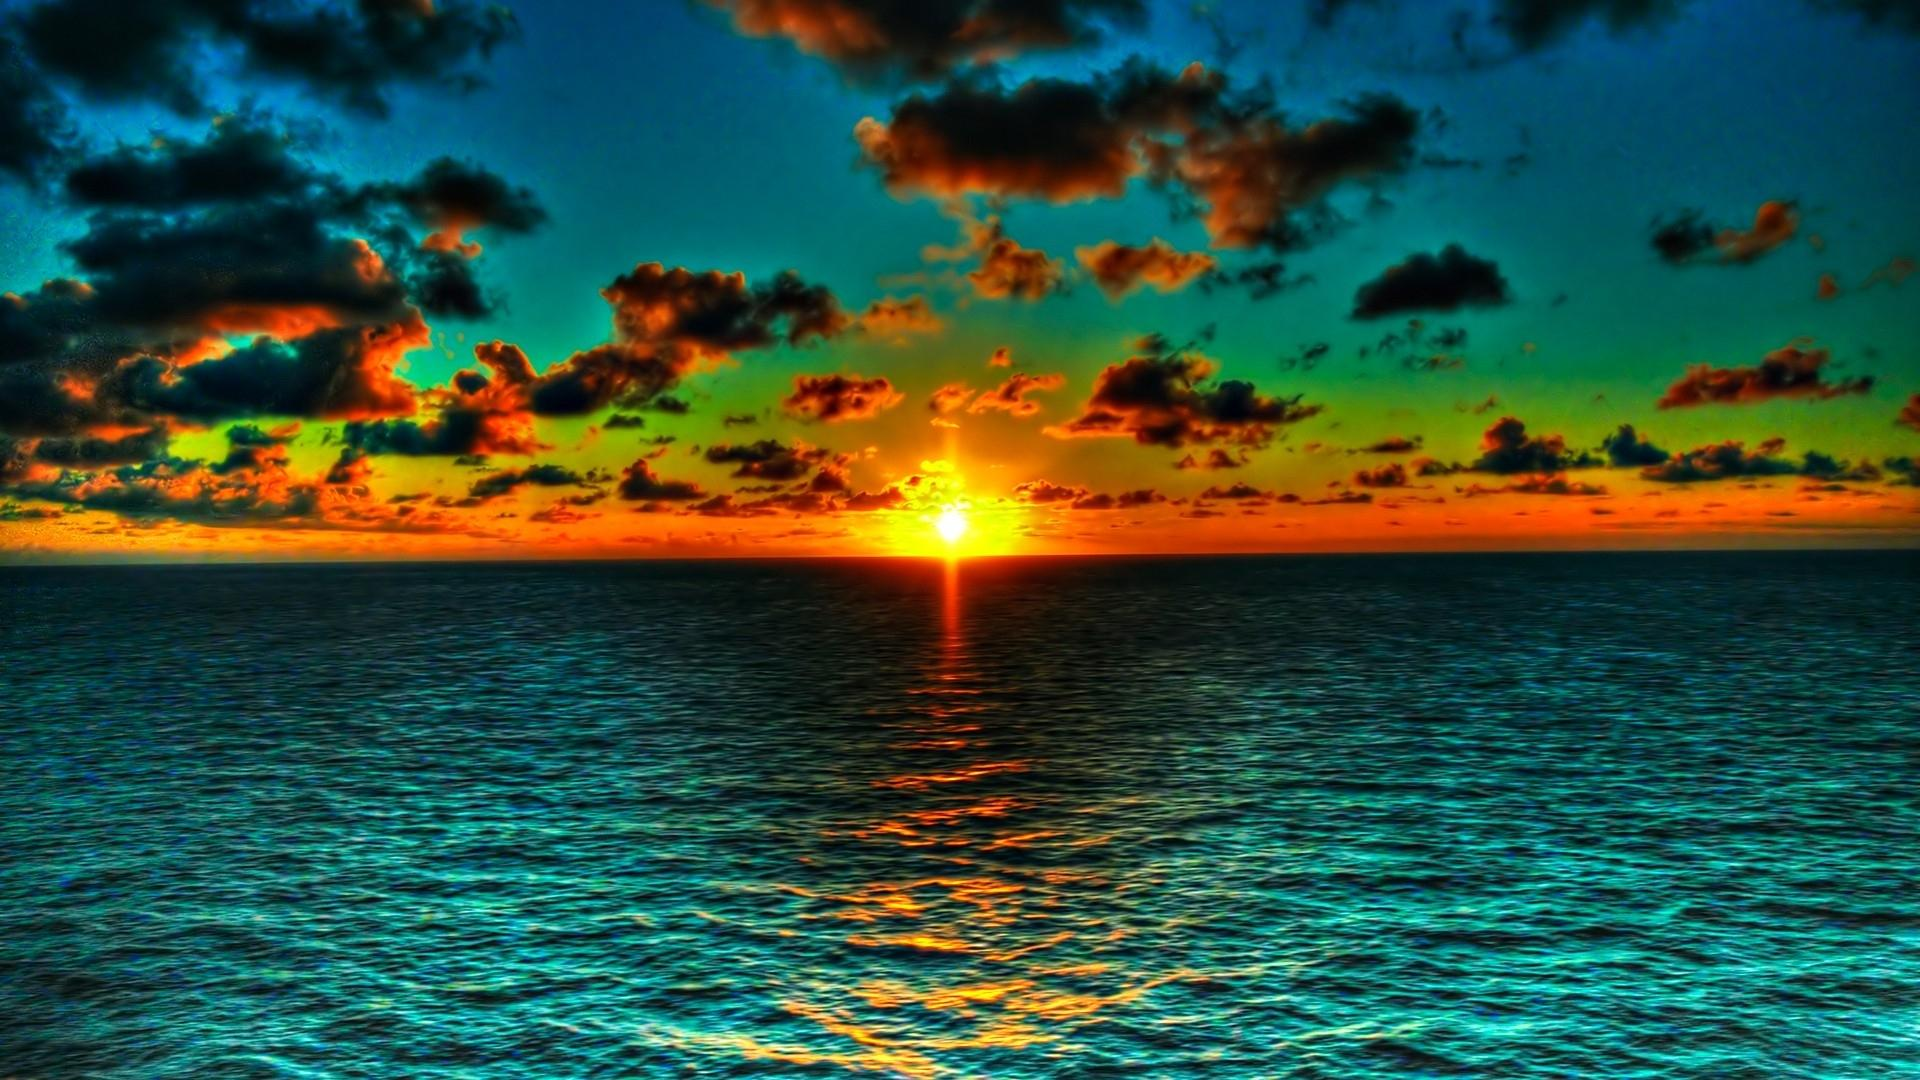 Sunset Wallpapers HD A28